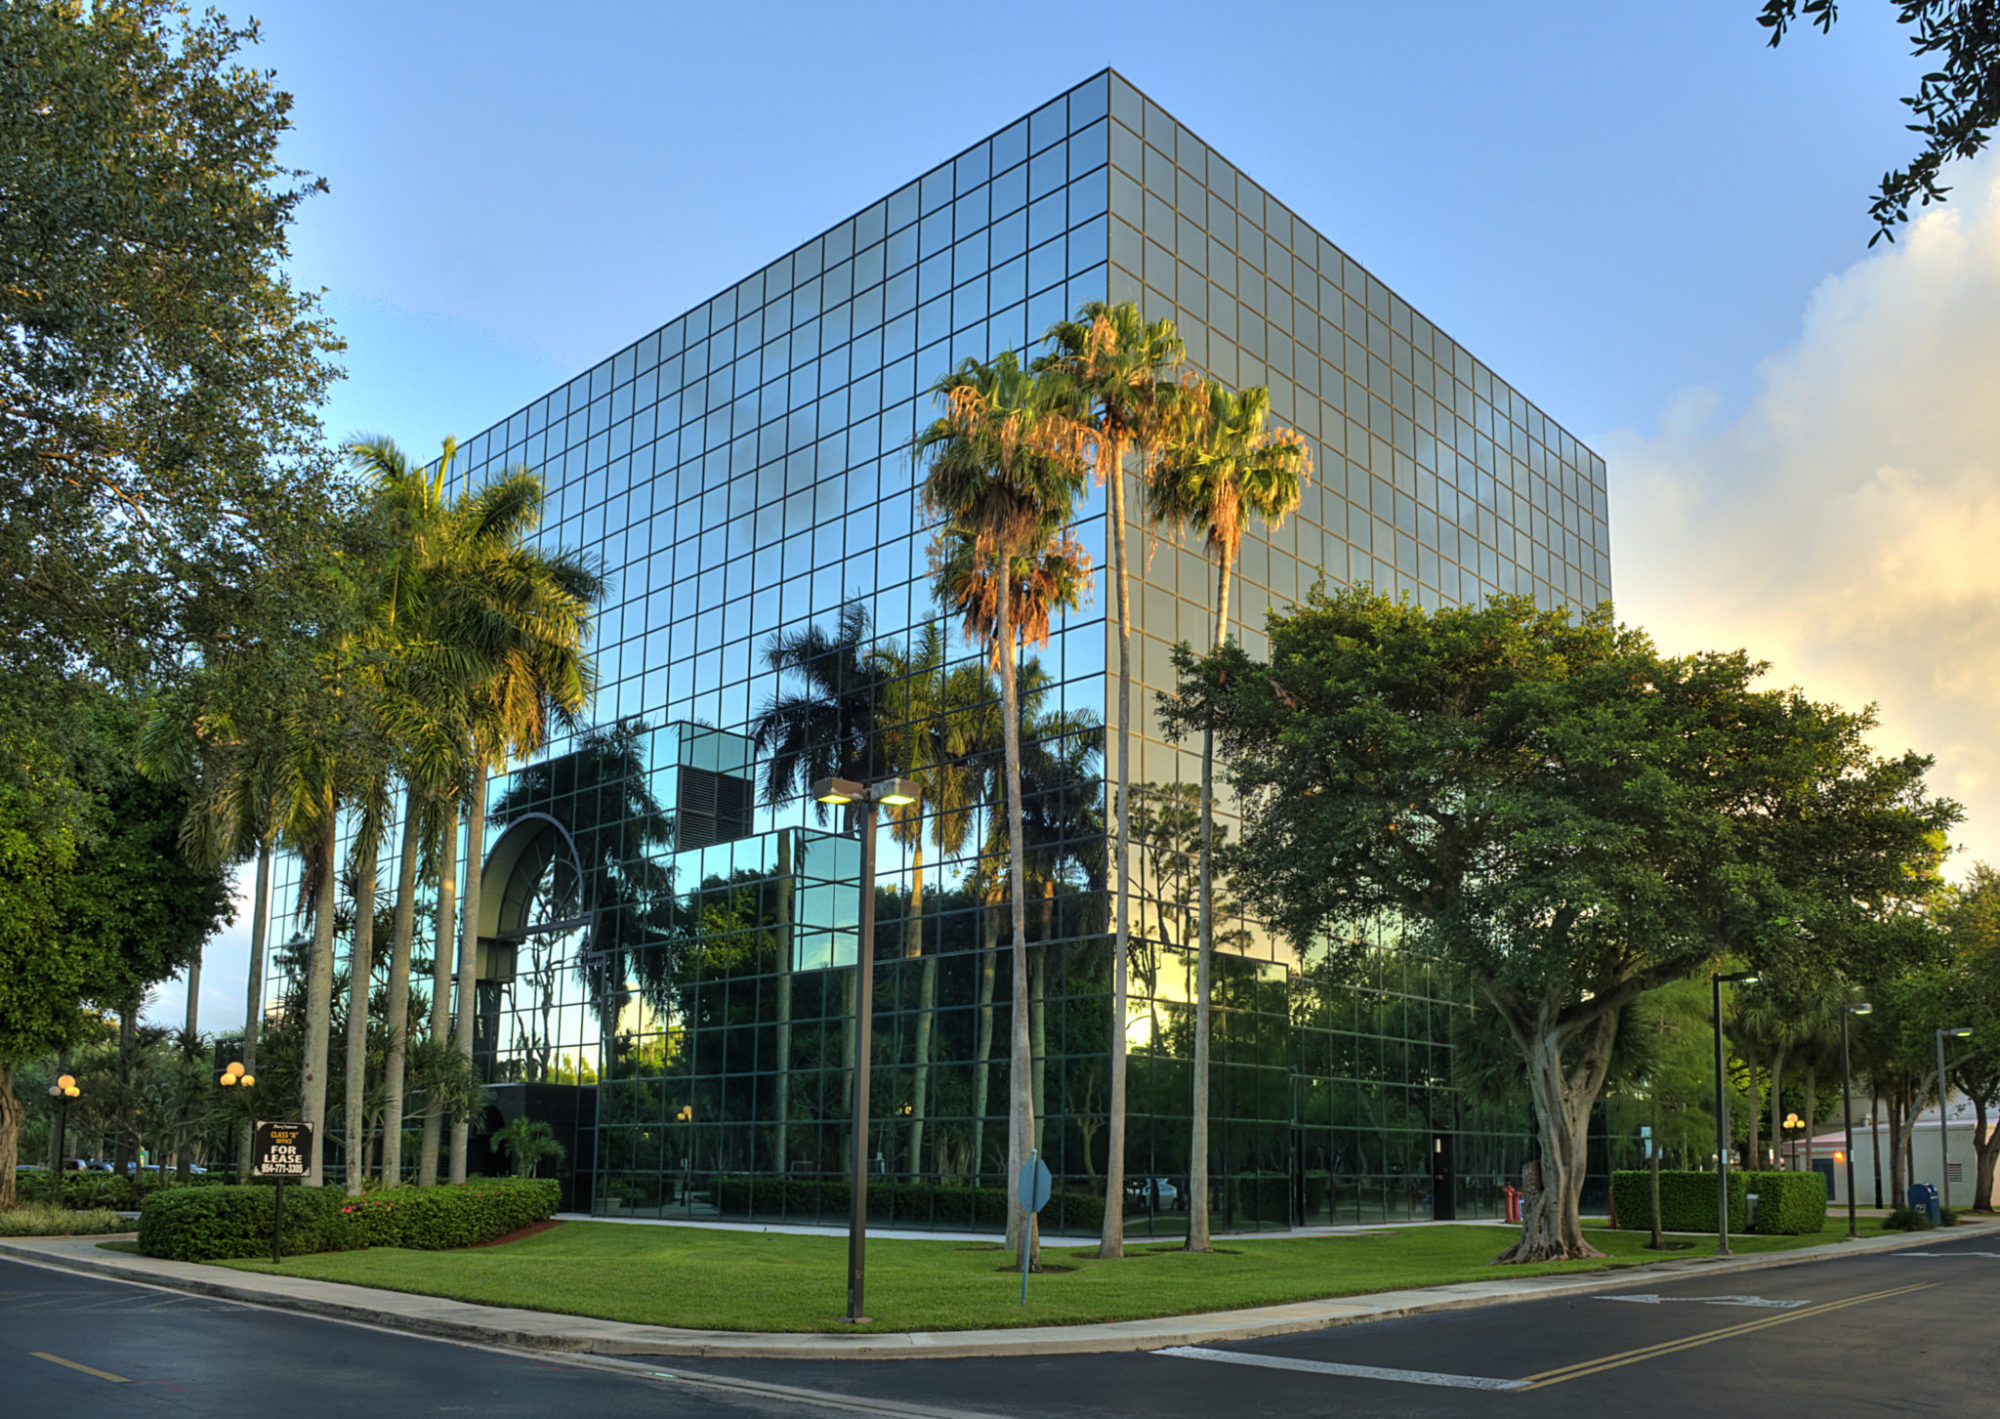 PEBB Enterprises - Boca Corporate Office, Boca Raton, Florida 2